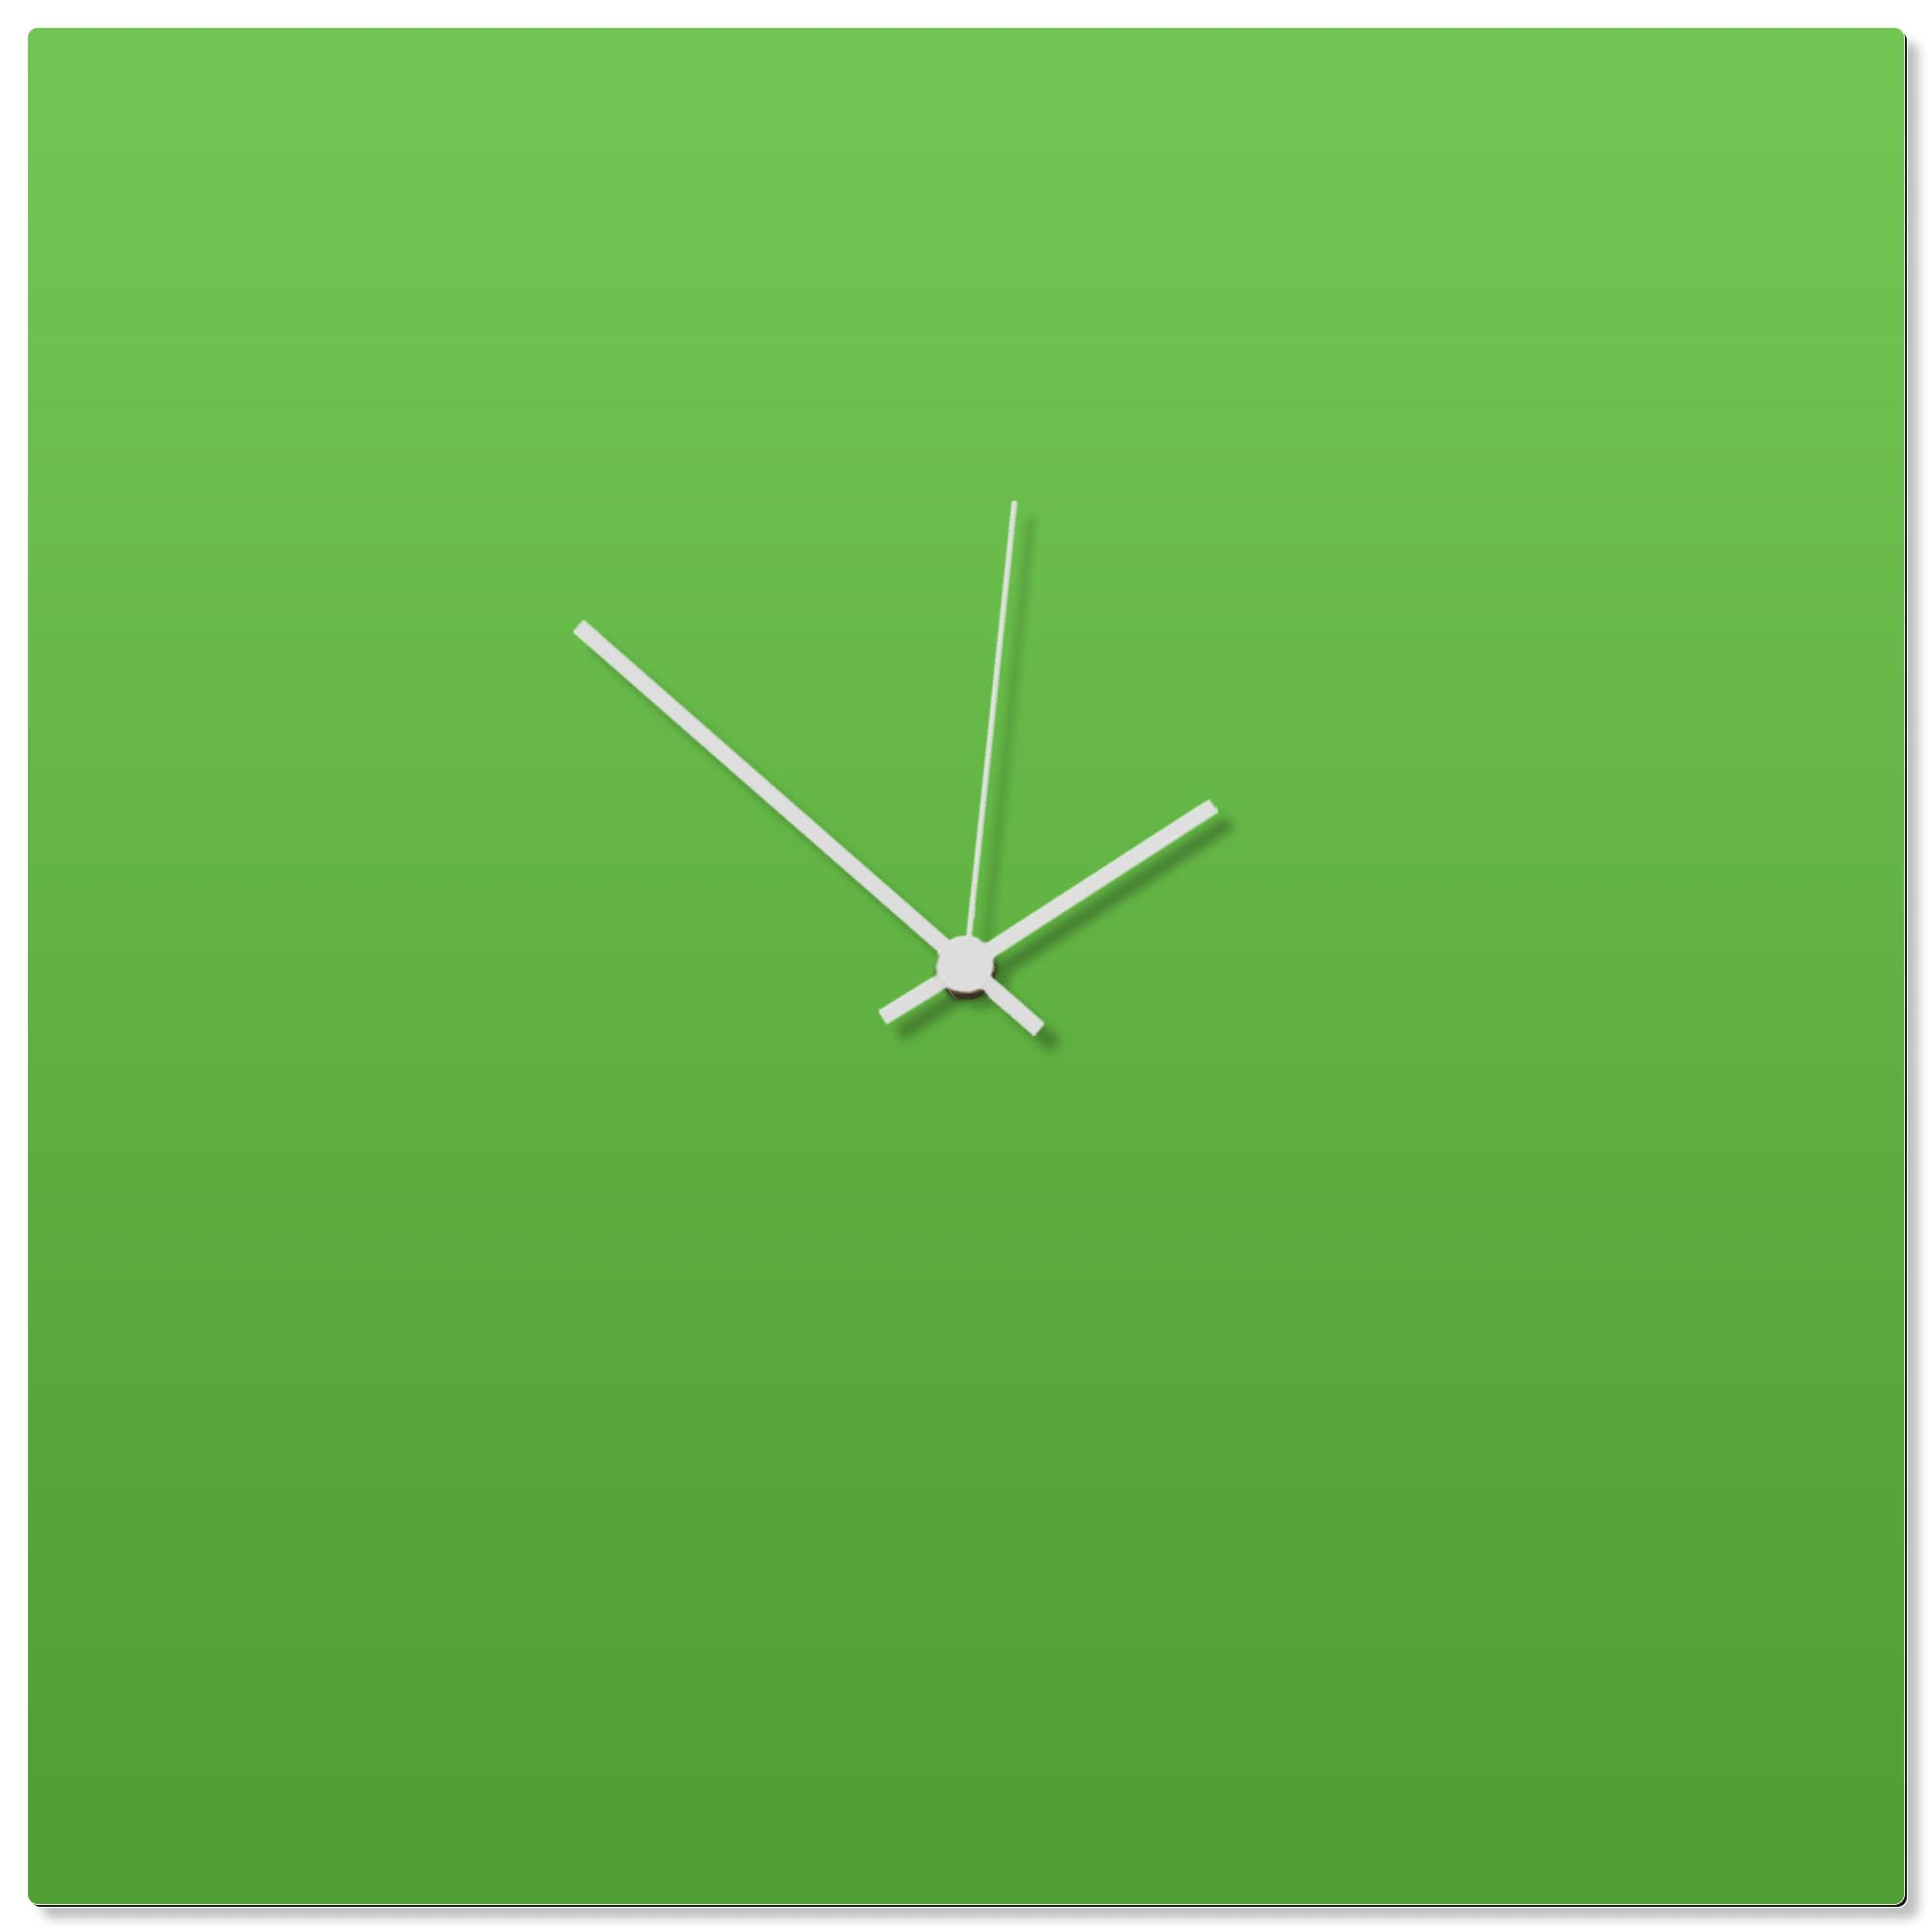 Greenout White Square Clock Large 23x23in. Aluminum Polymetal